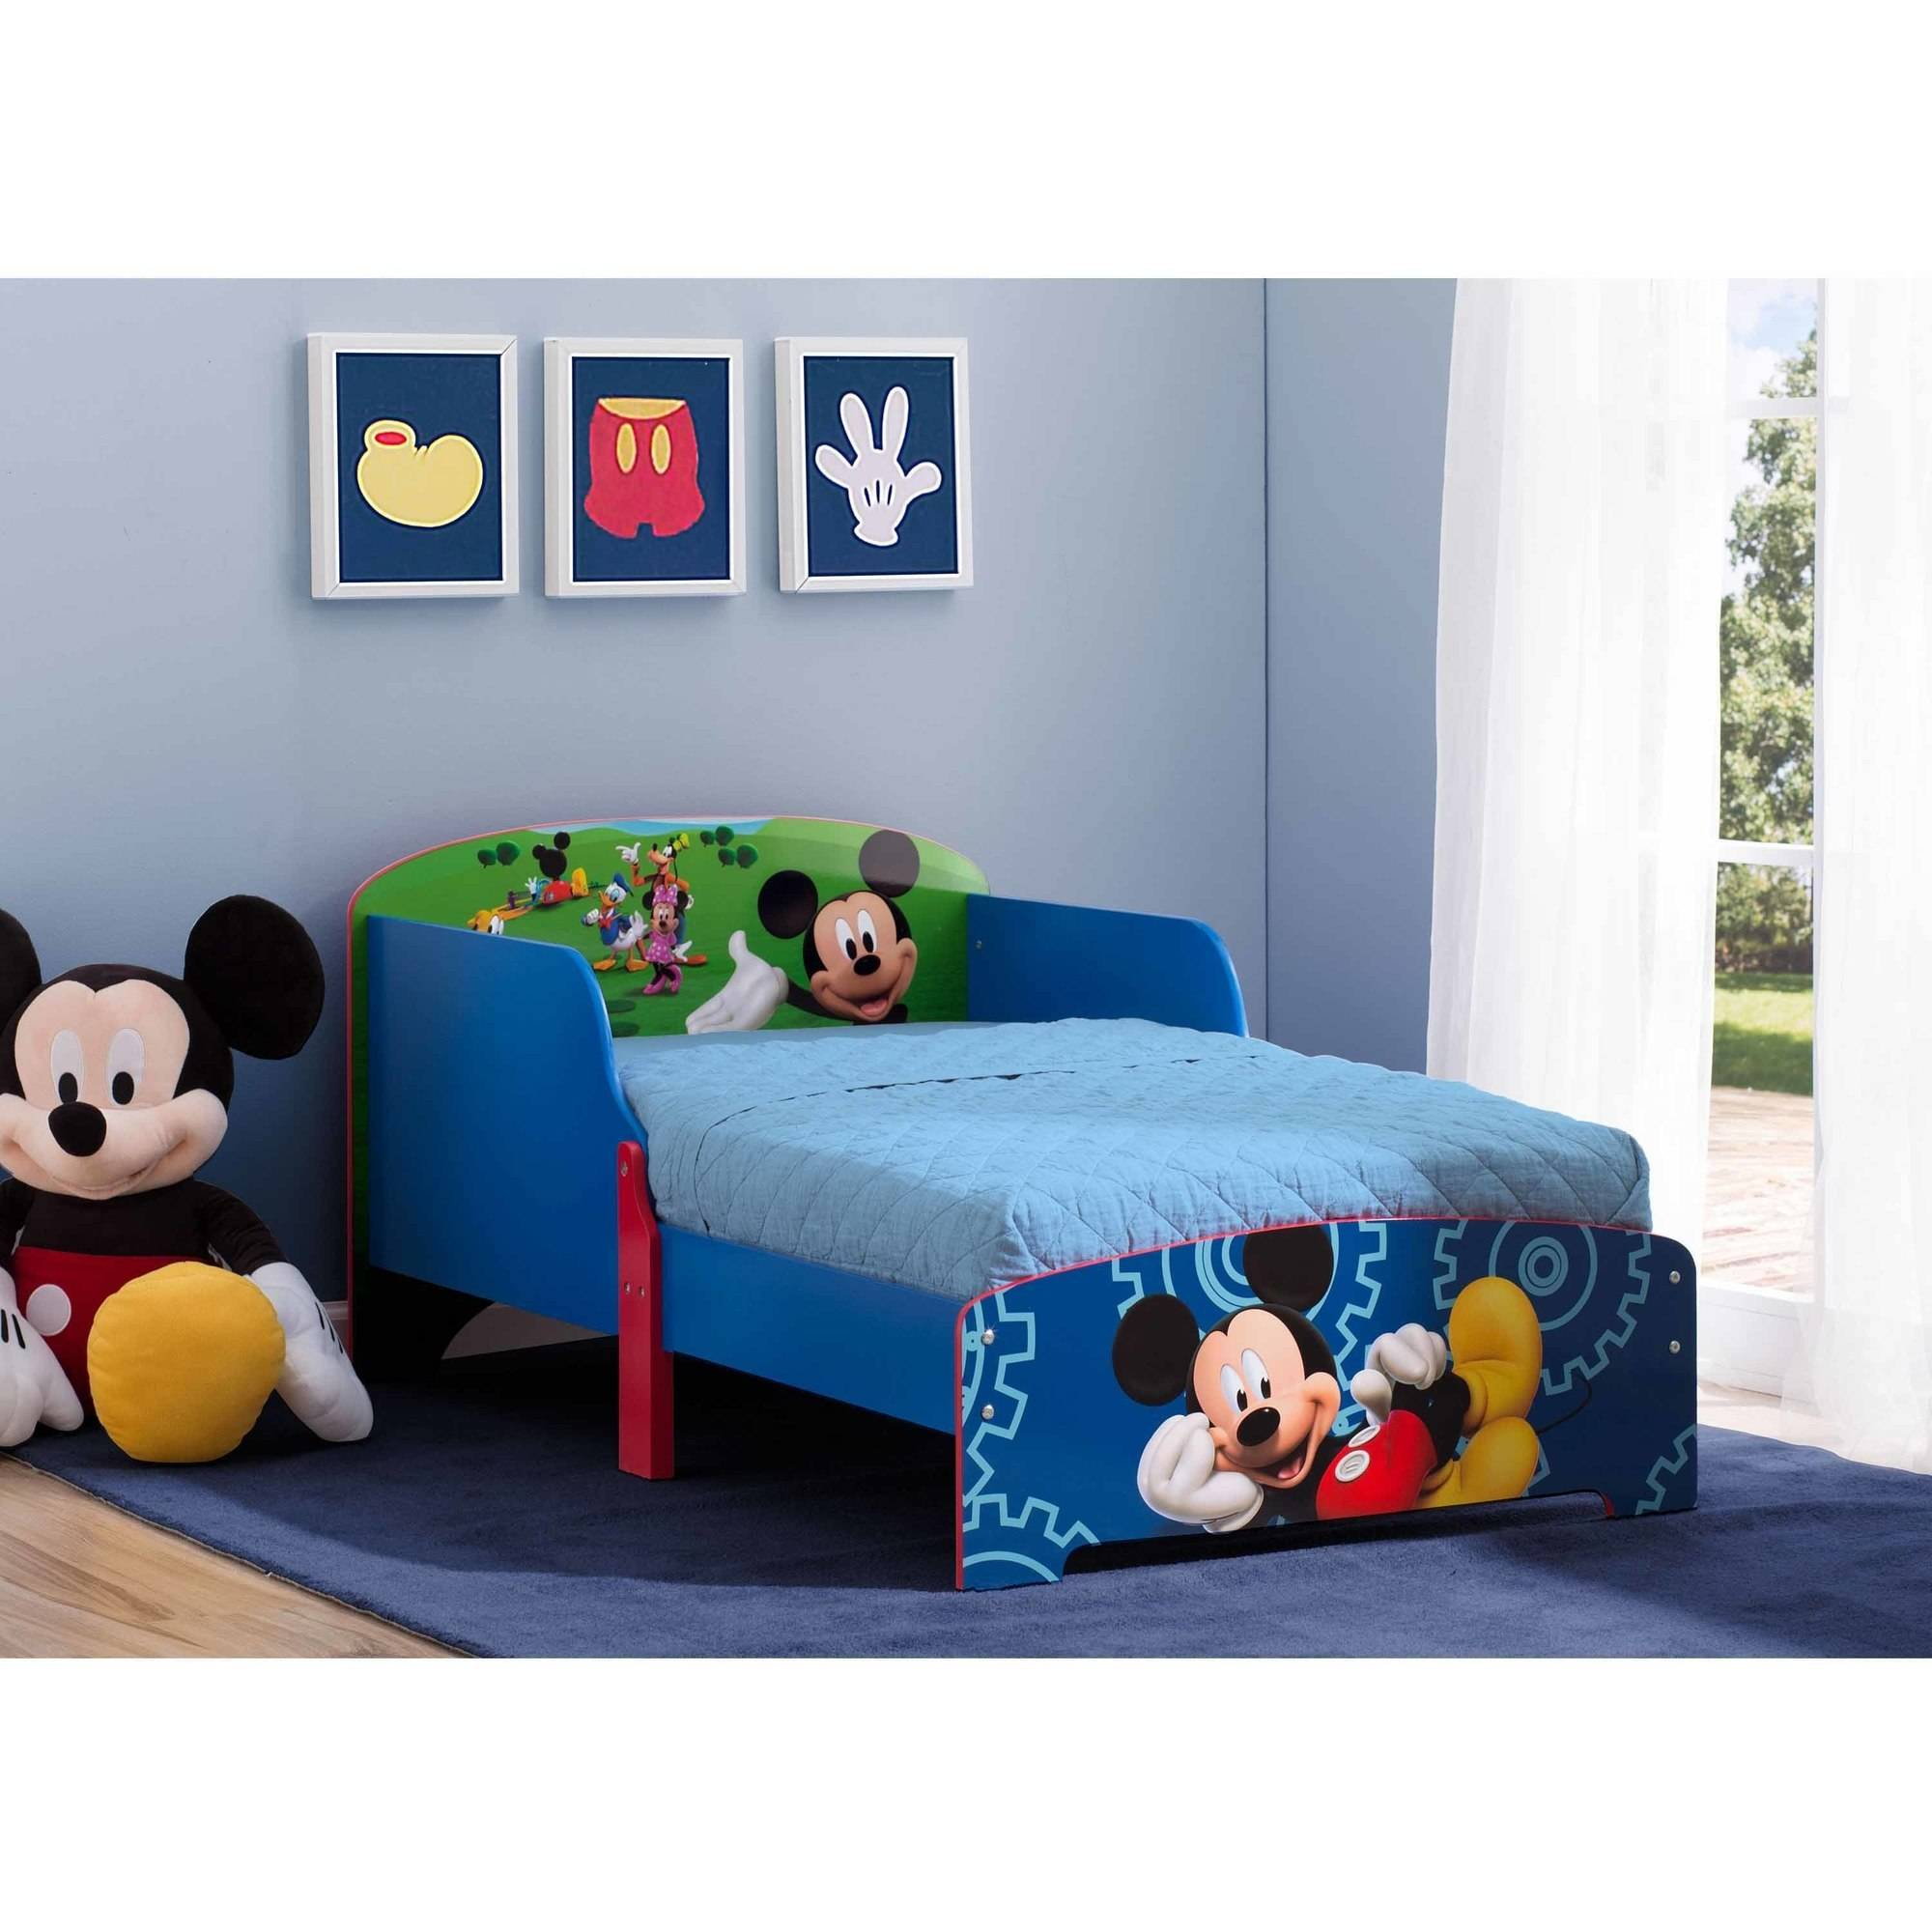 Mickey Mouse Clubhouse Furniture Home Decor